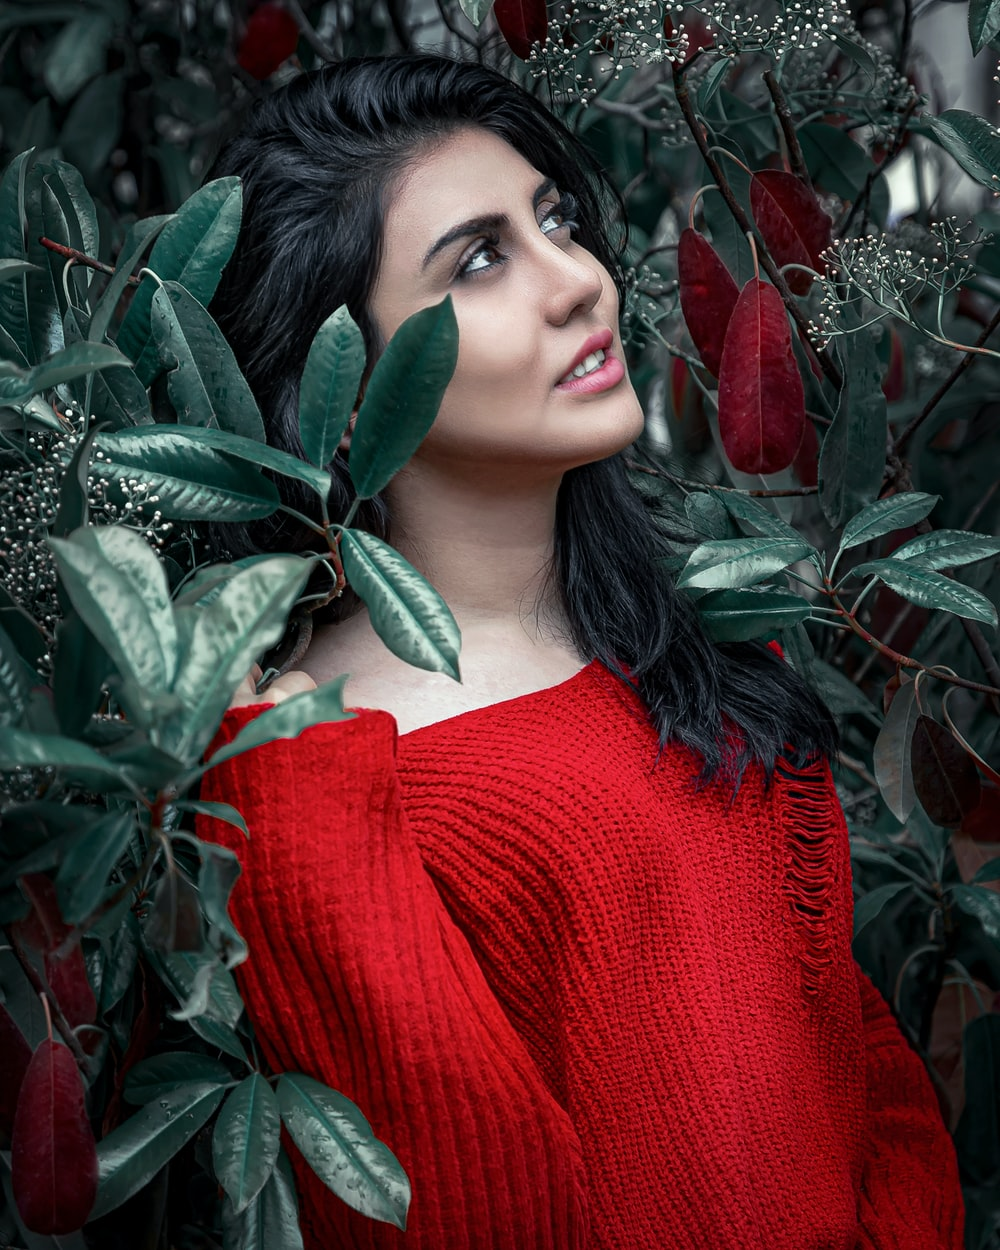 woman in red knit sweater holding green leaves